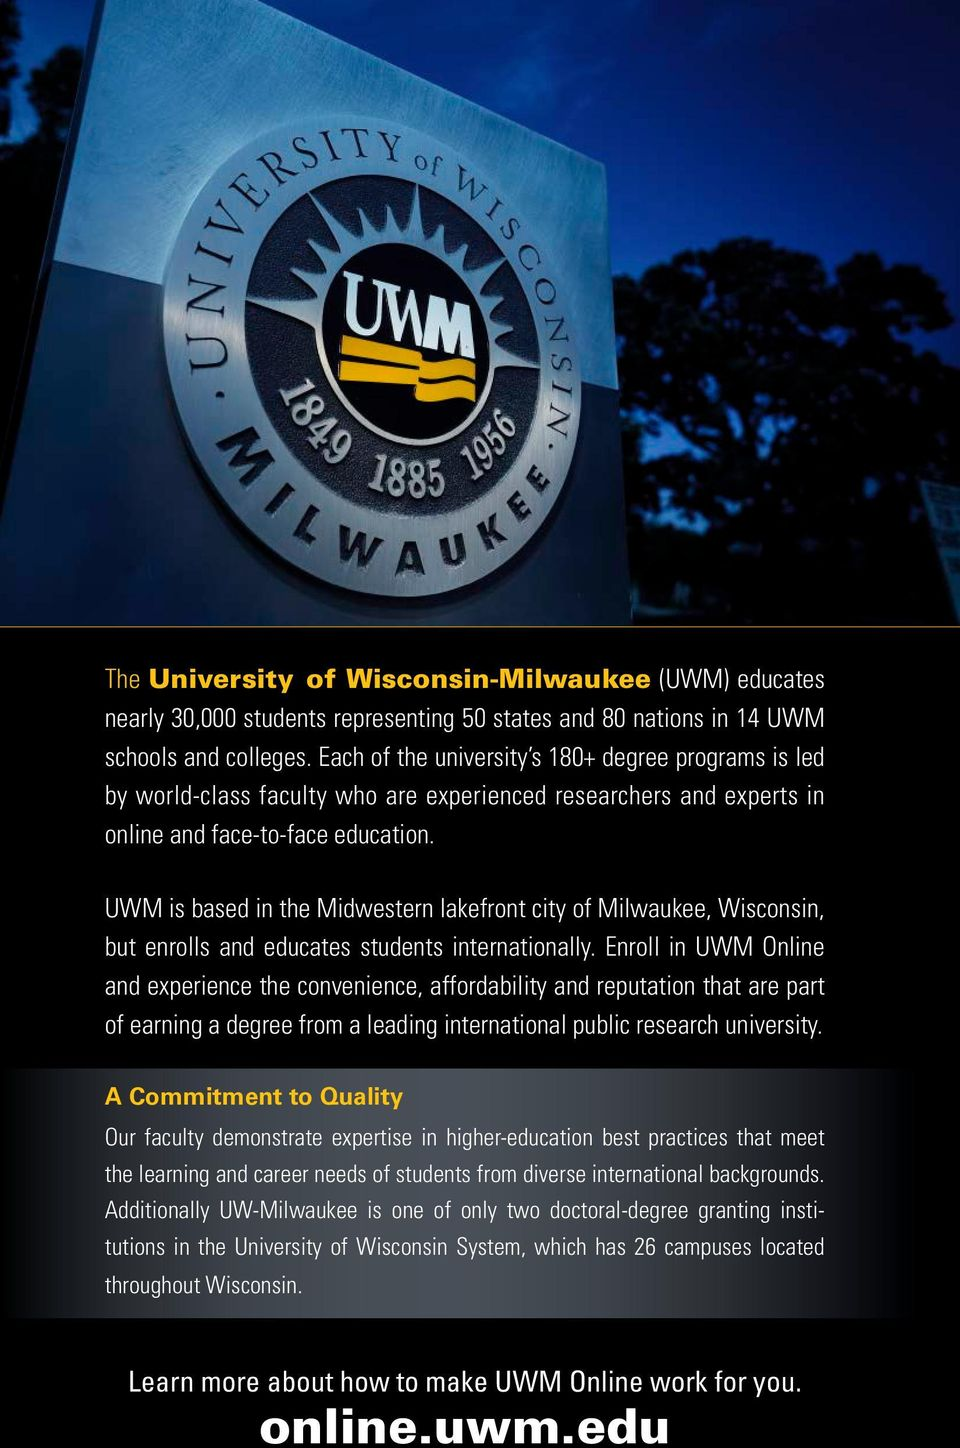 UWM is based in the Midwestern lakefront city of Milwaukee, Wisconsin, but enrolls and educates students internationally.